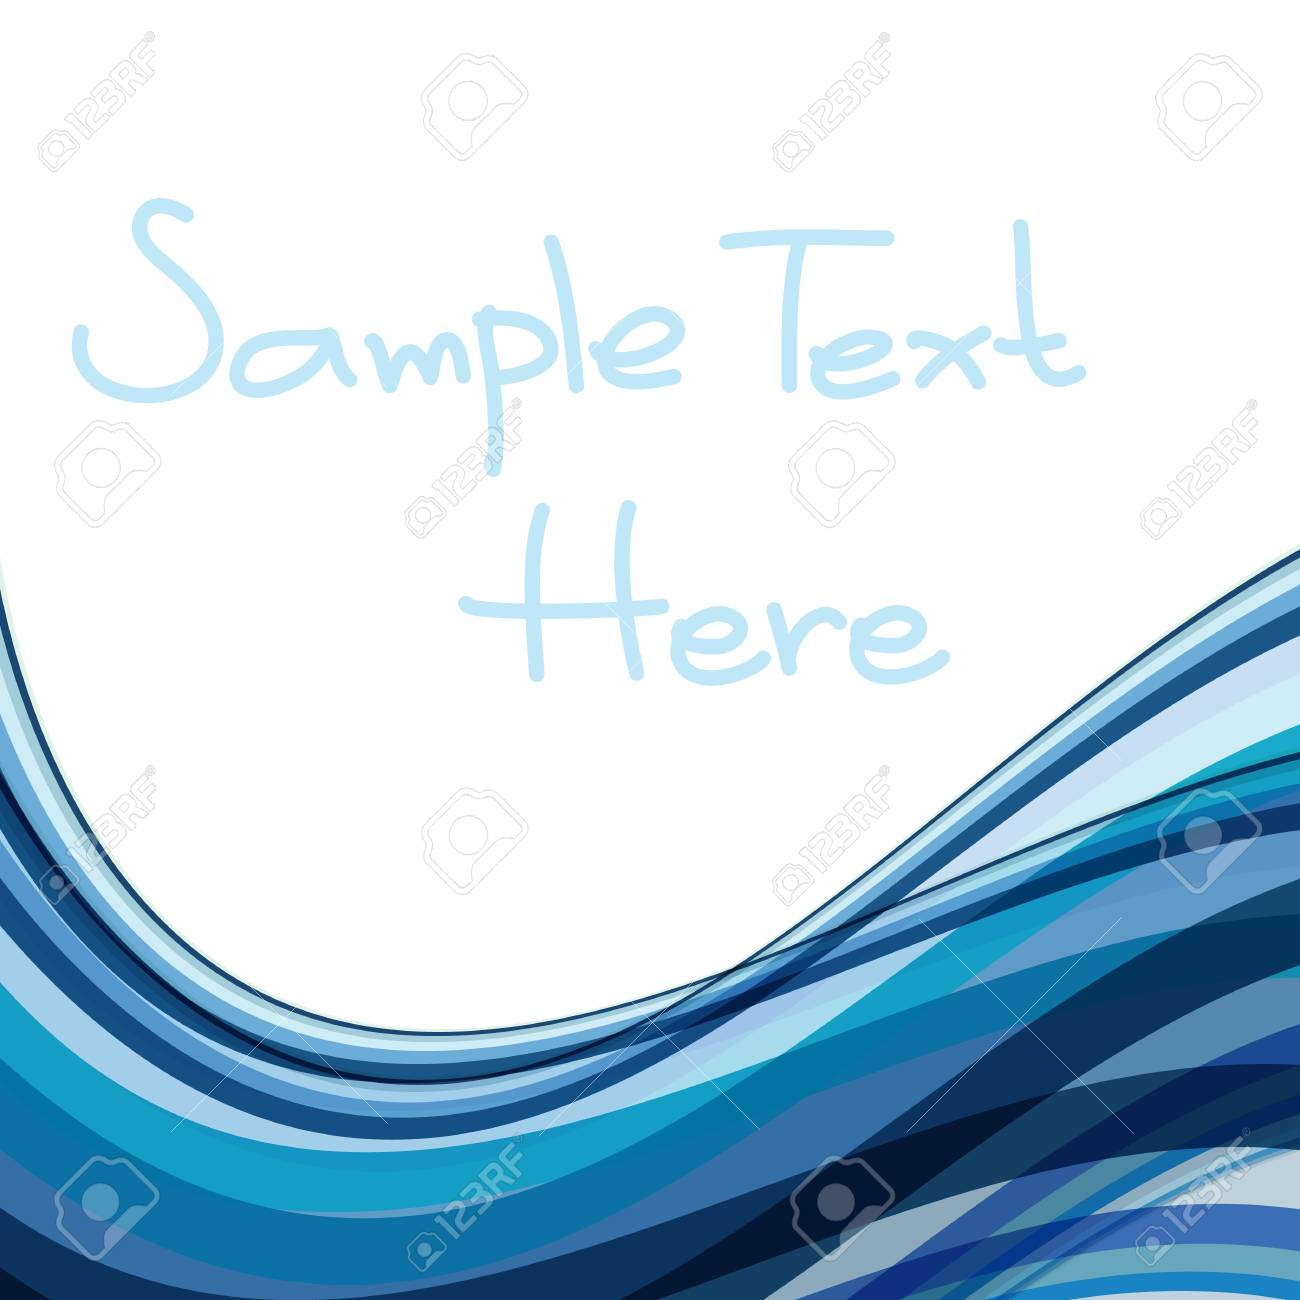 Abstract wave background Stock Vector - 20366288